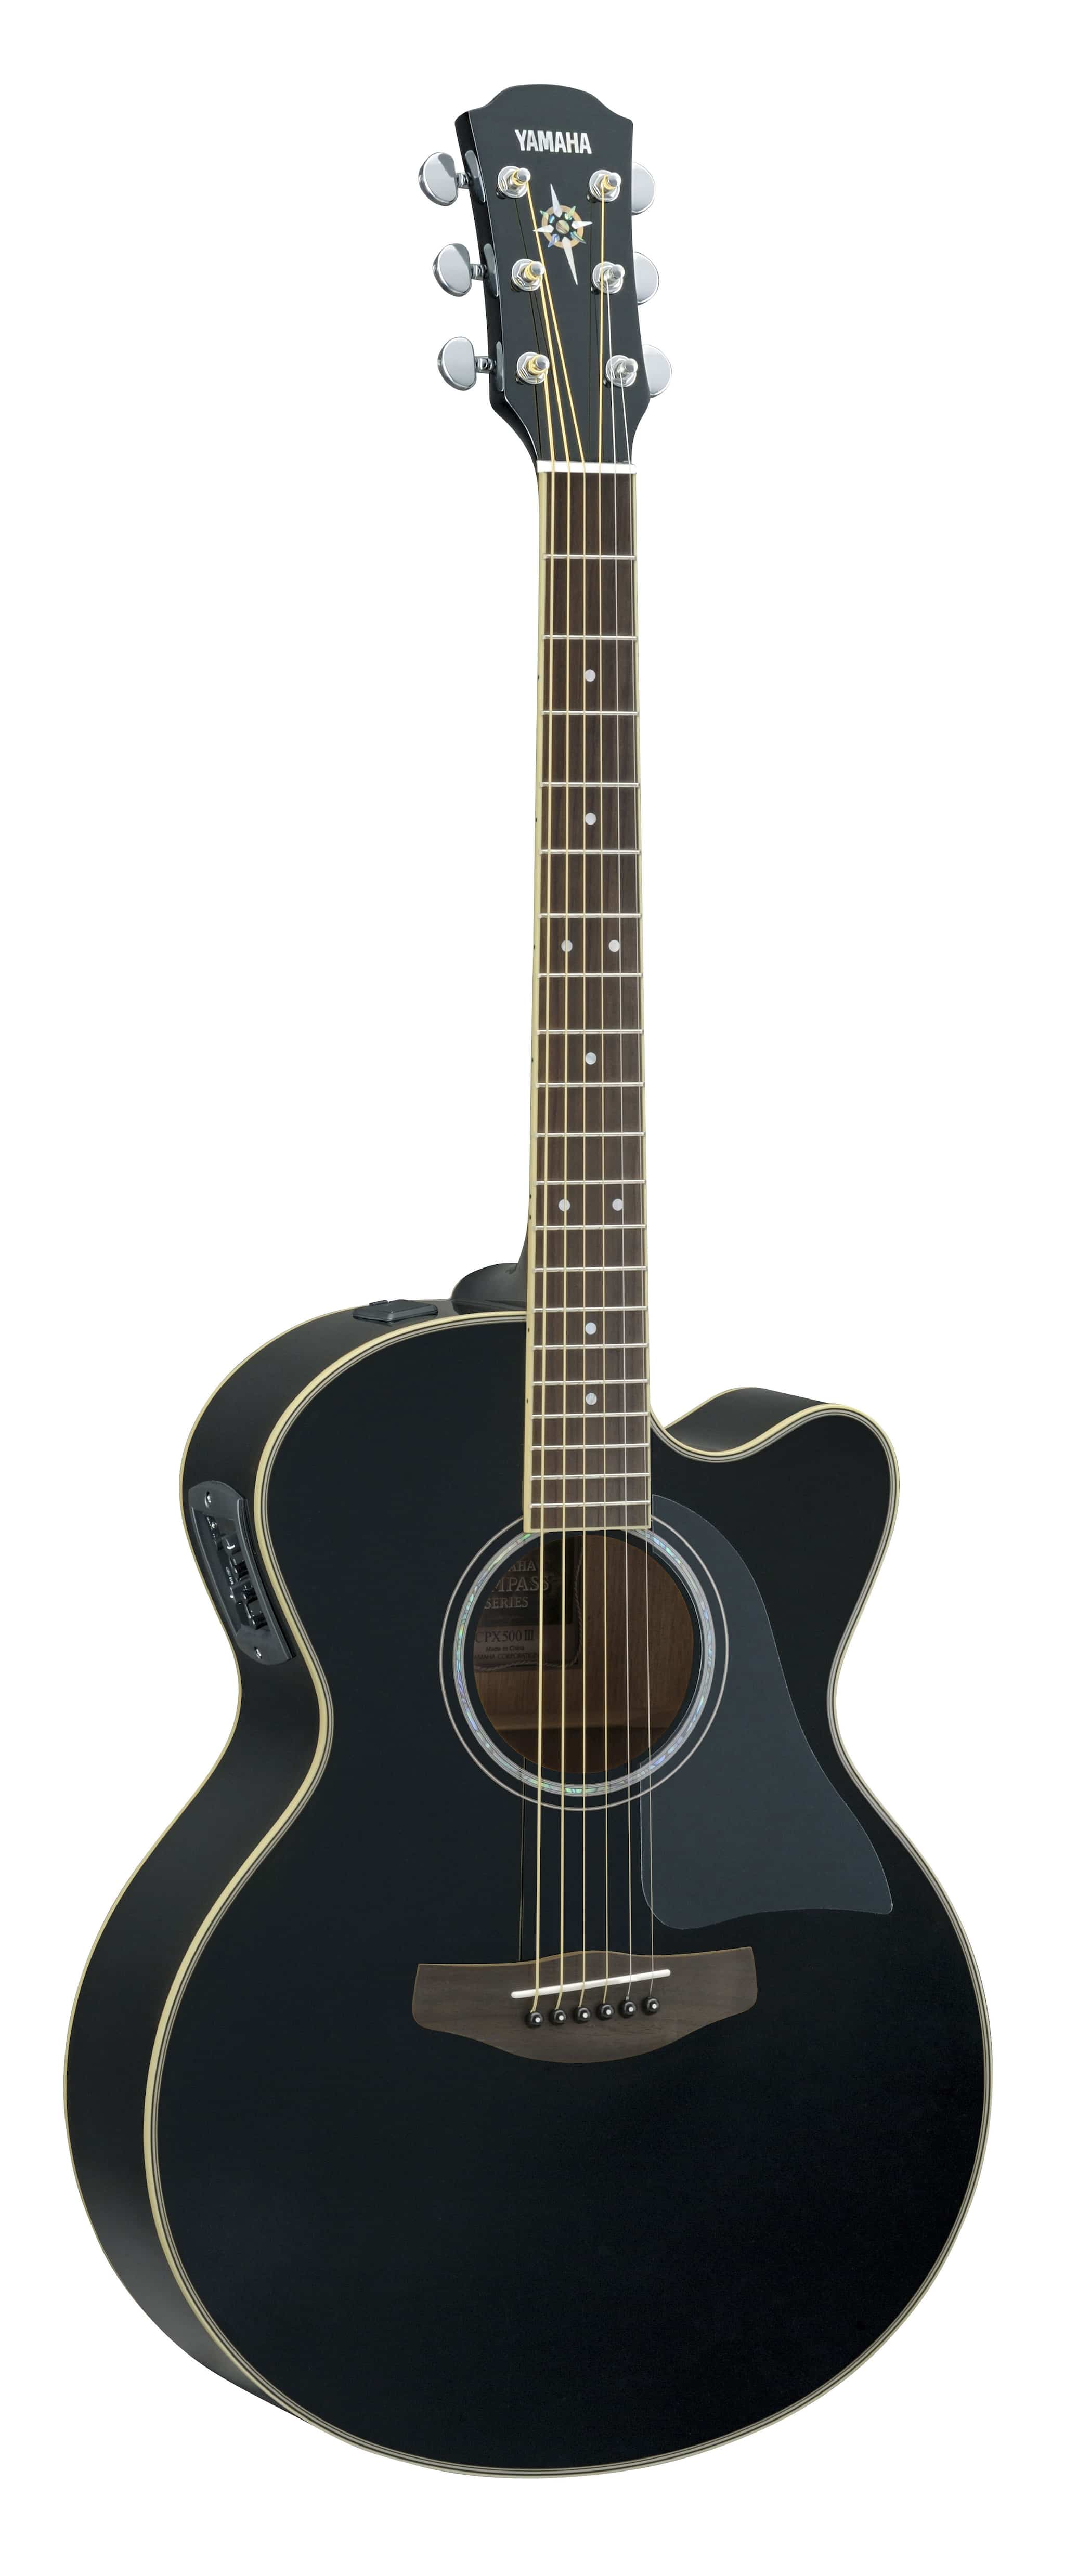 Buy Yamaha Electro Acoustic Guitar Black Cpx500iii Features